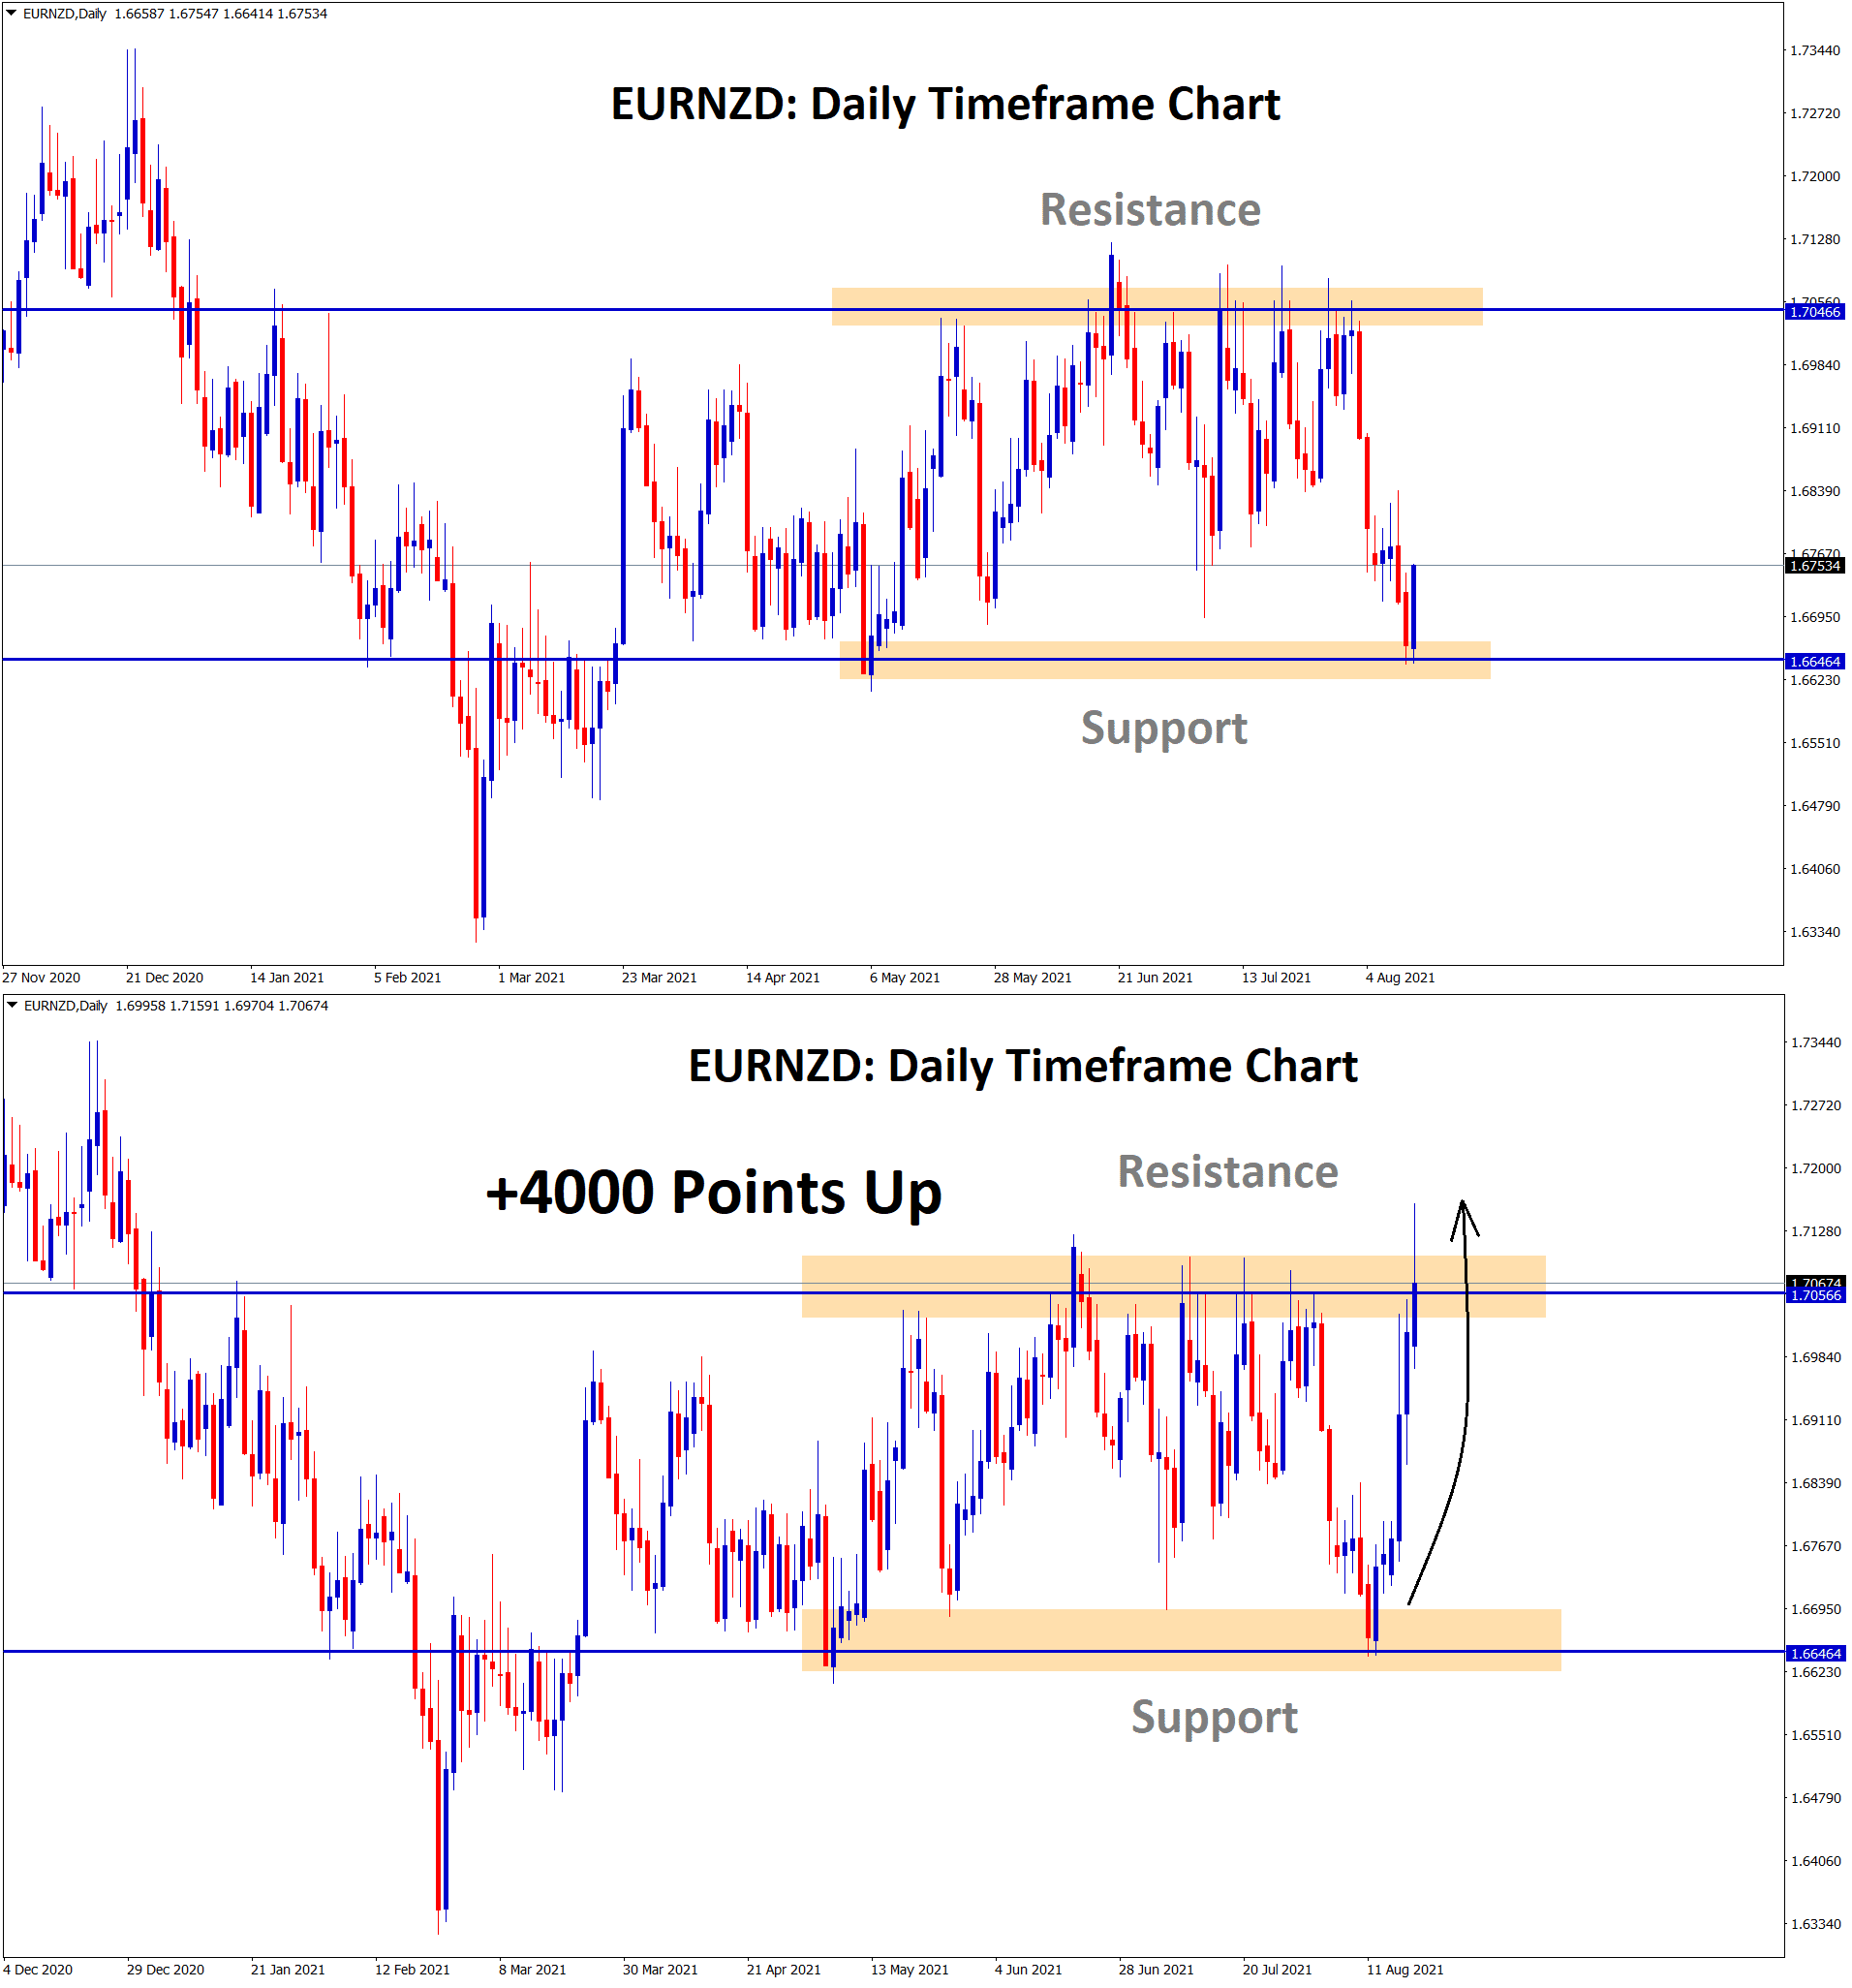 EURNZD rebound 4000 points from the support